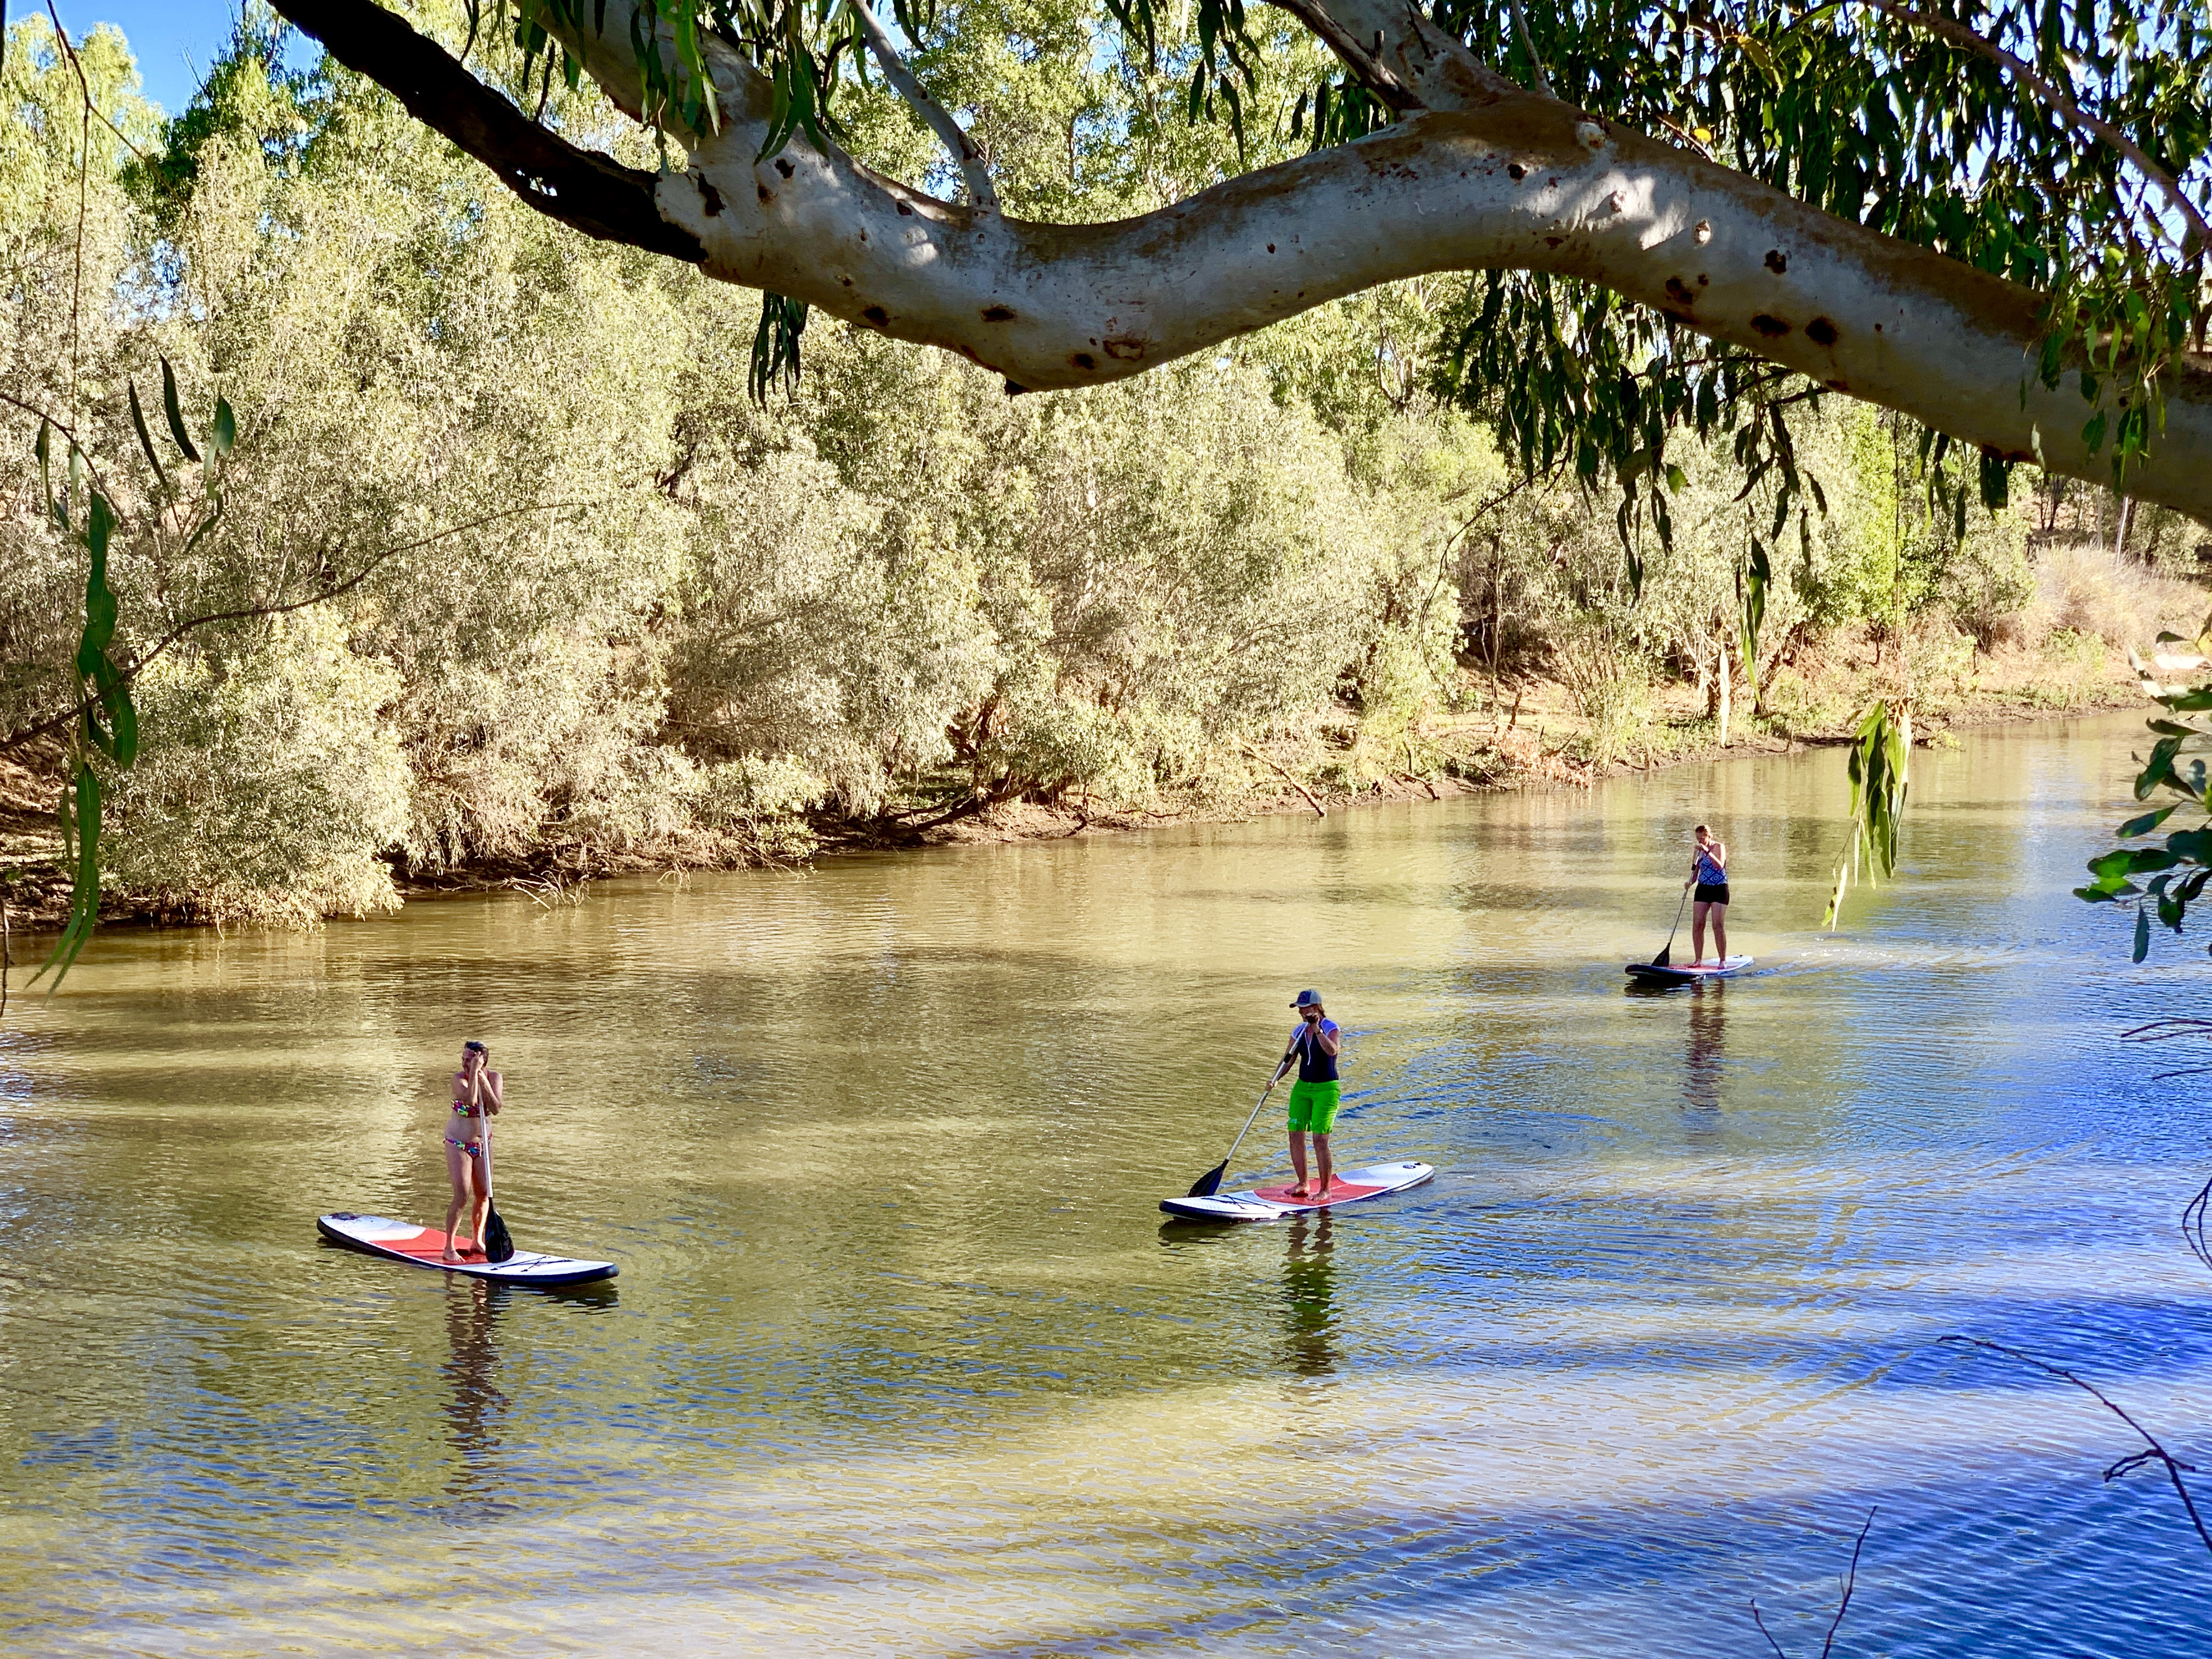 Paddle boarding in outback billabongs and rivers. How Australian!